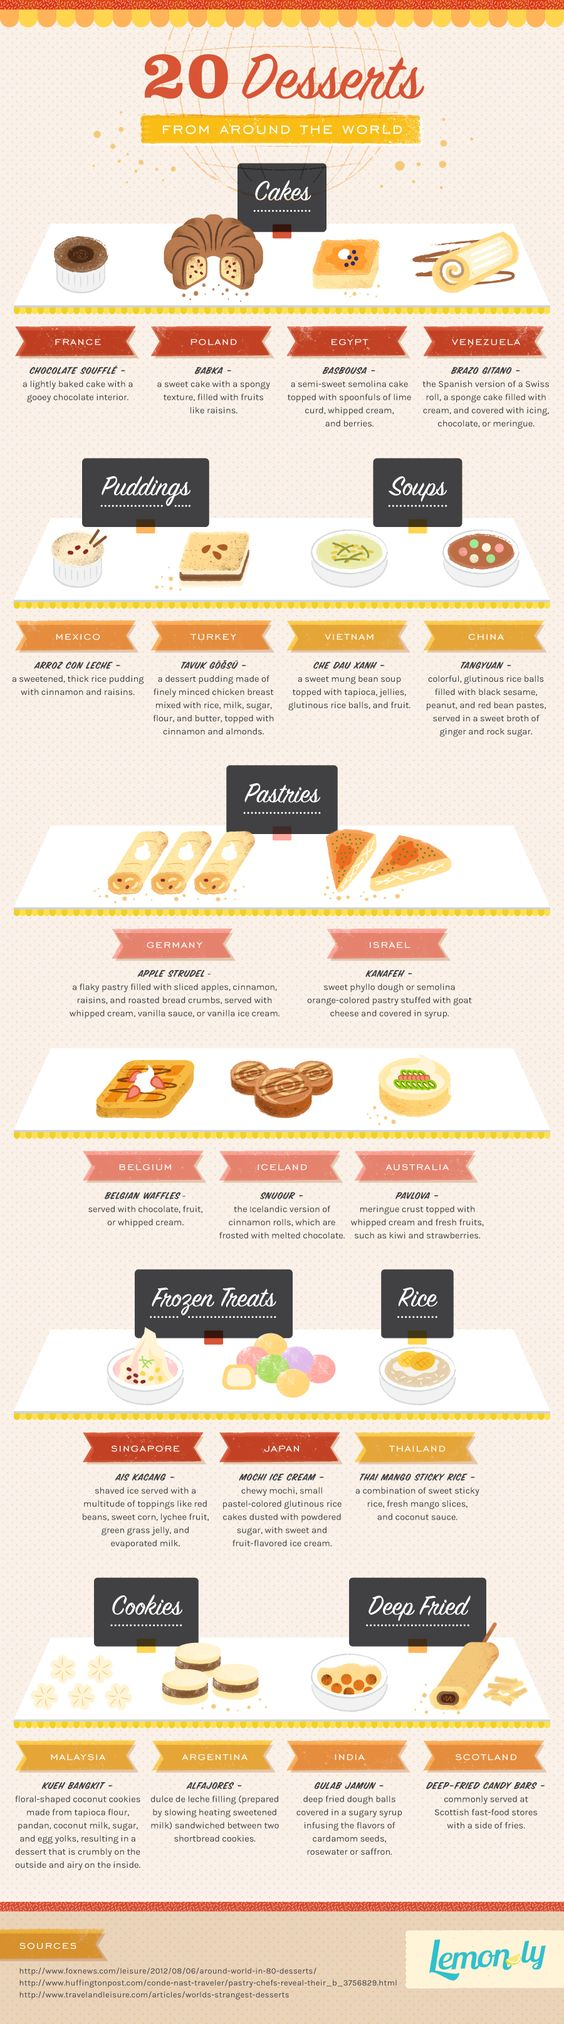 Cookies recipe from different countries